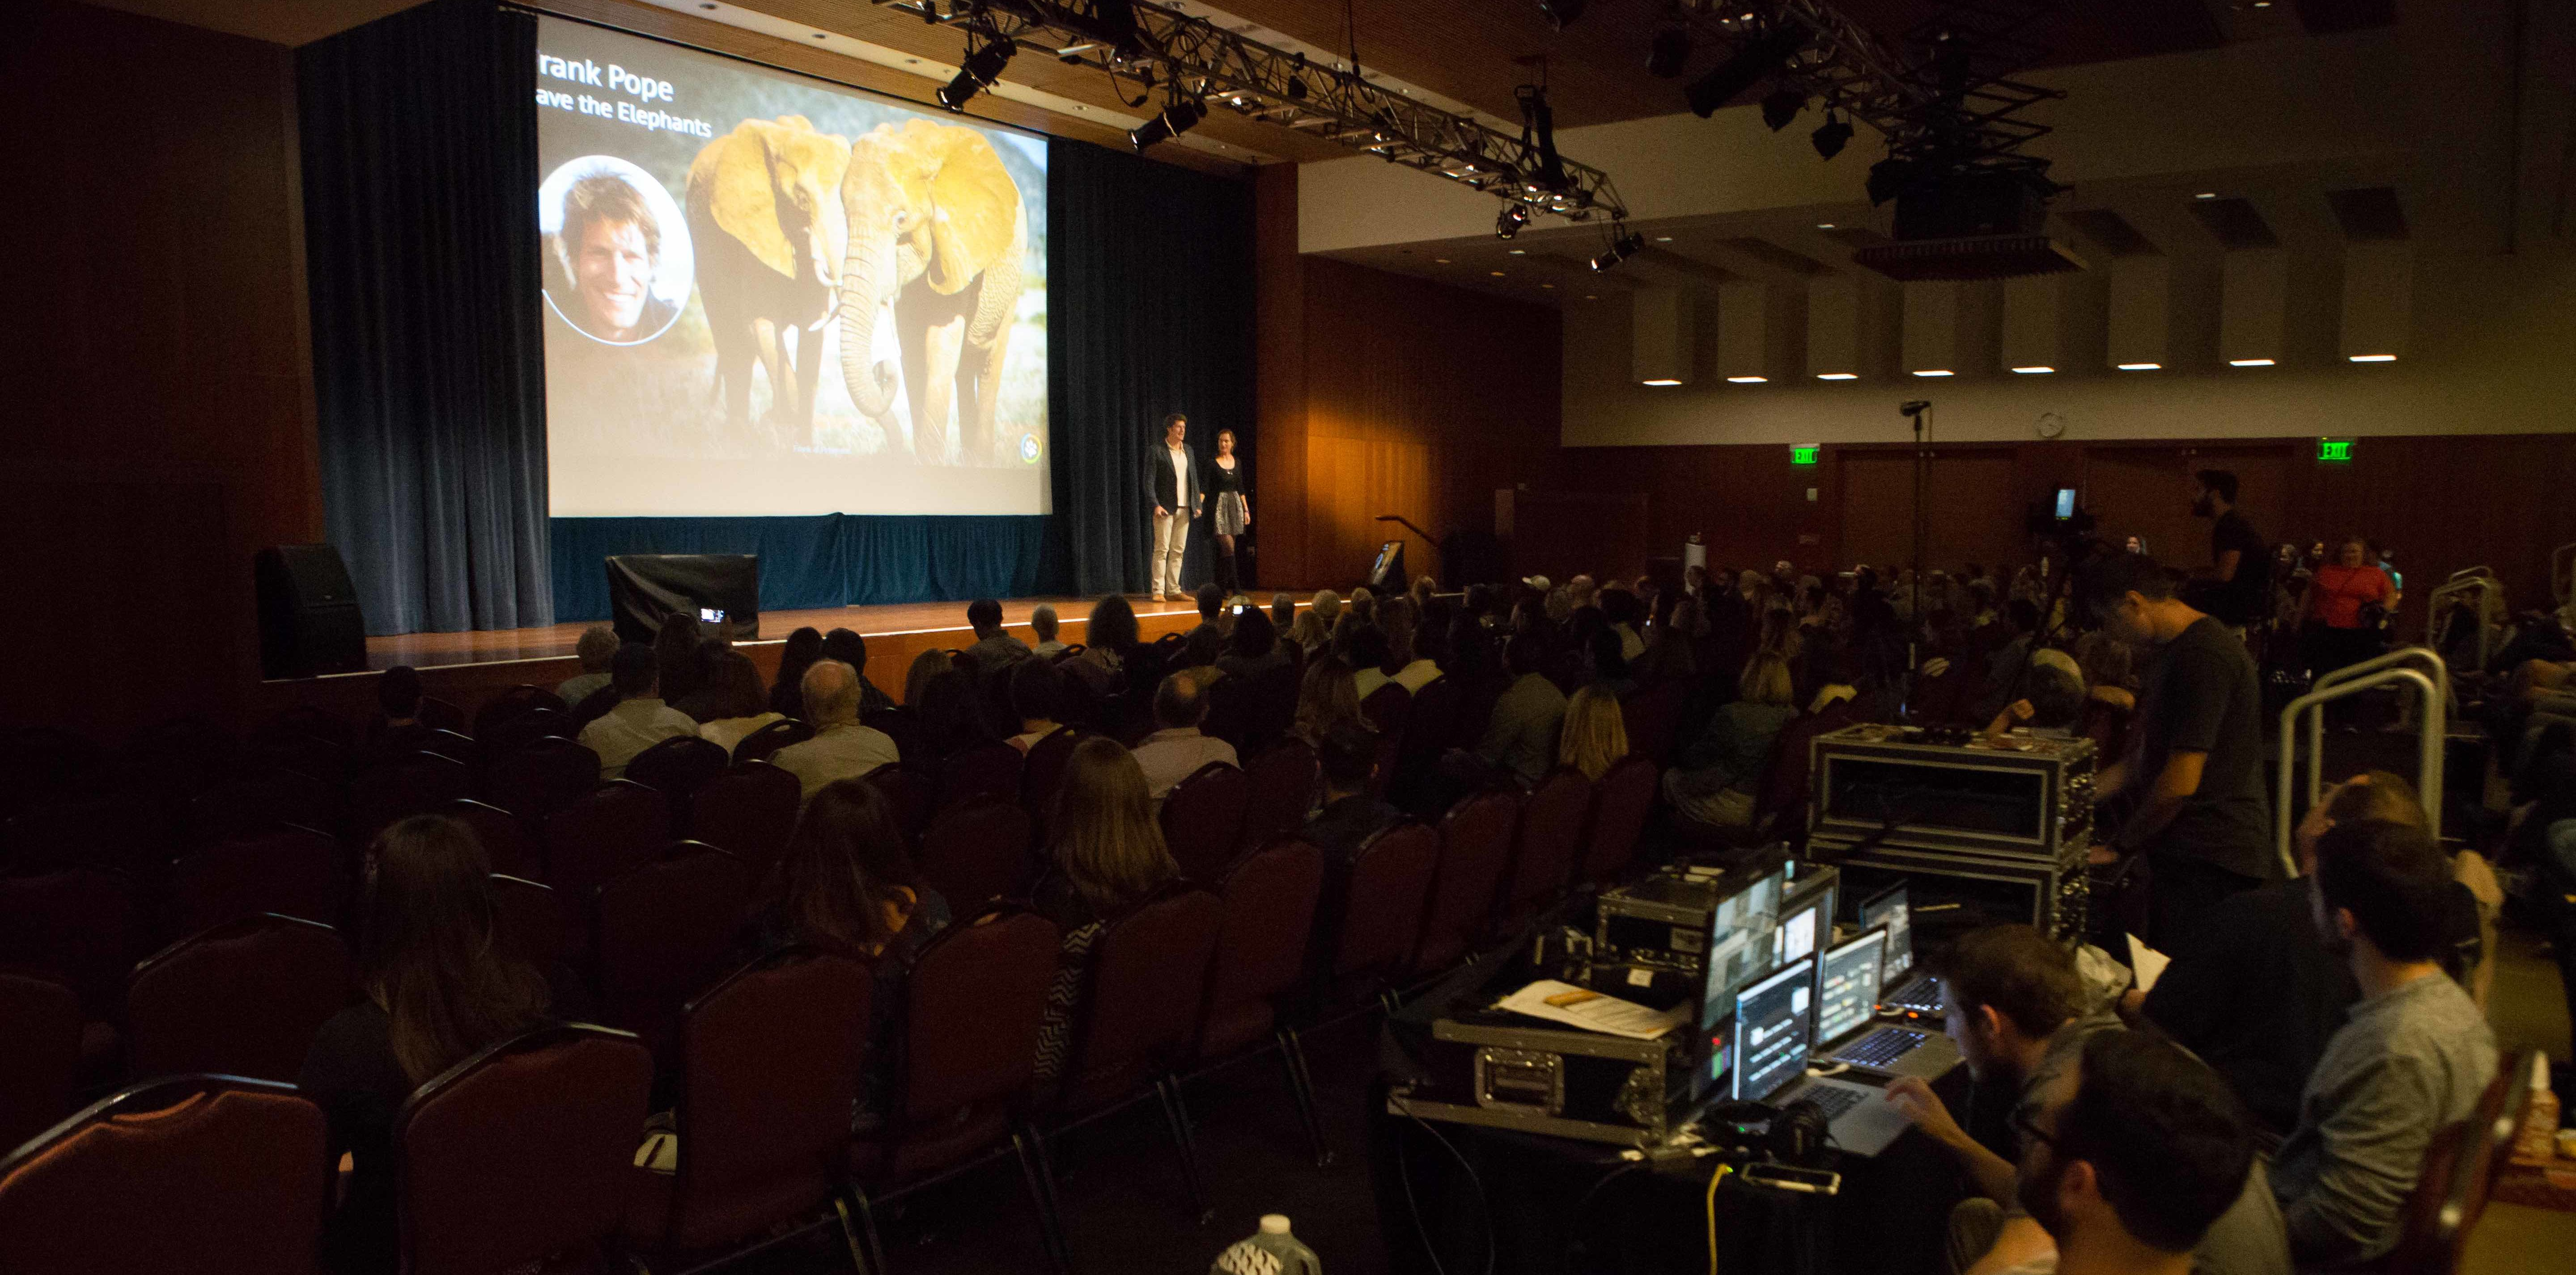 Audiovisual services for Conference in San Francisco